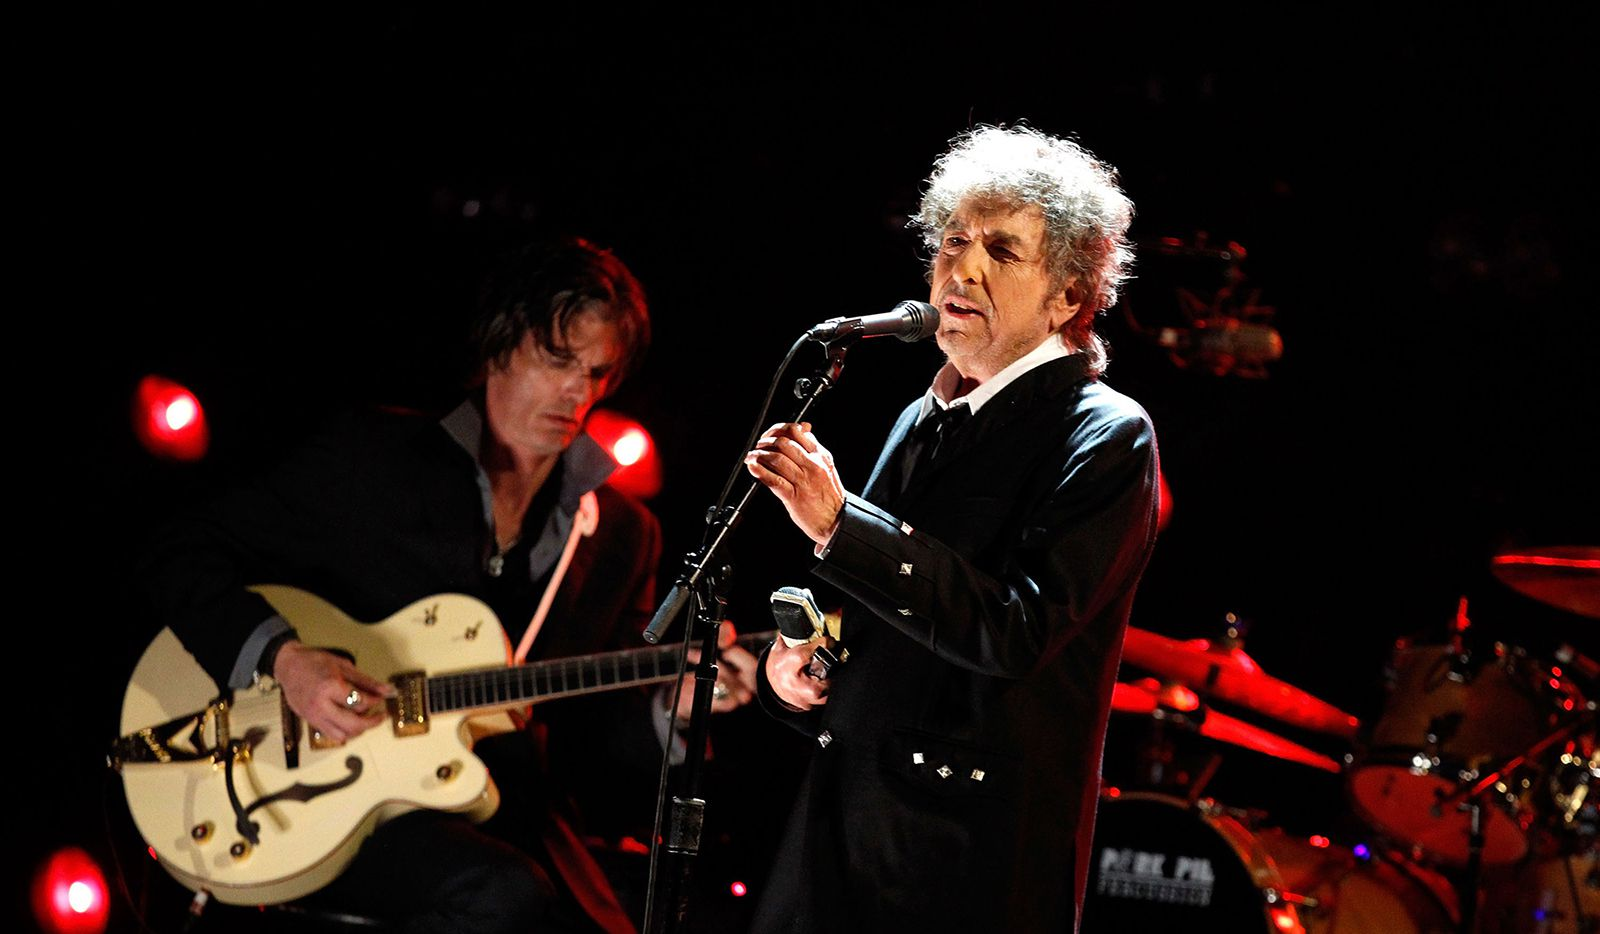 Musician Bob Dylan performs during the 17th Annual Critics' Choice Movie Awards held at The Hollywood Palladium on Jan. 12, 2012 in Los Angeles.